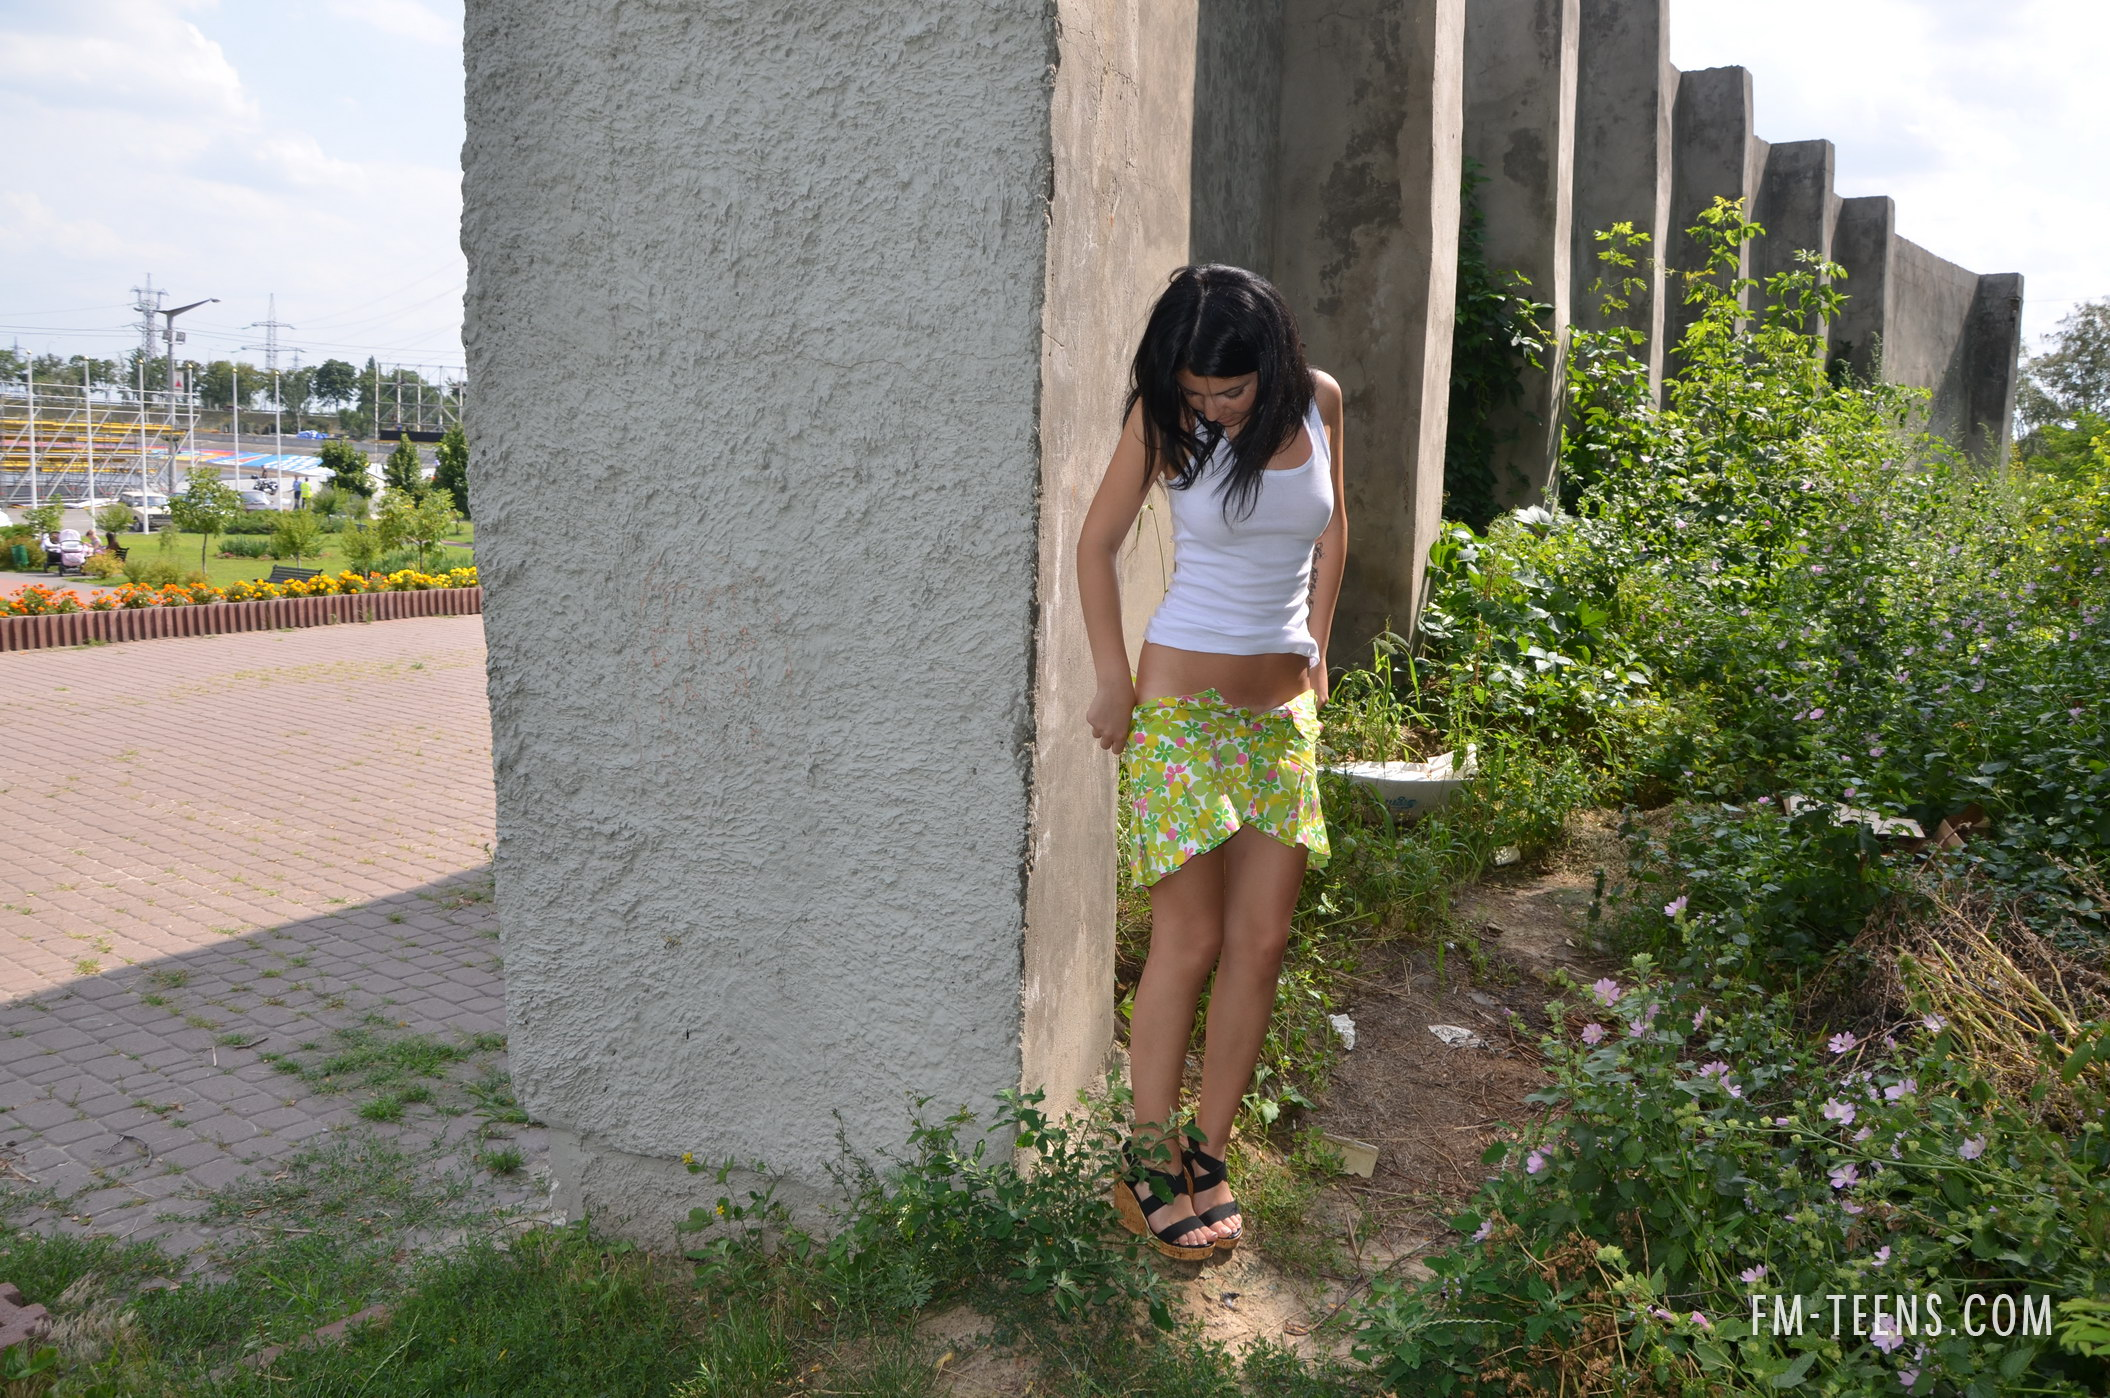 twinkle-young-brunette-nude-public-tits-russia-fm-teens-12